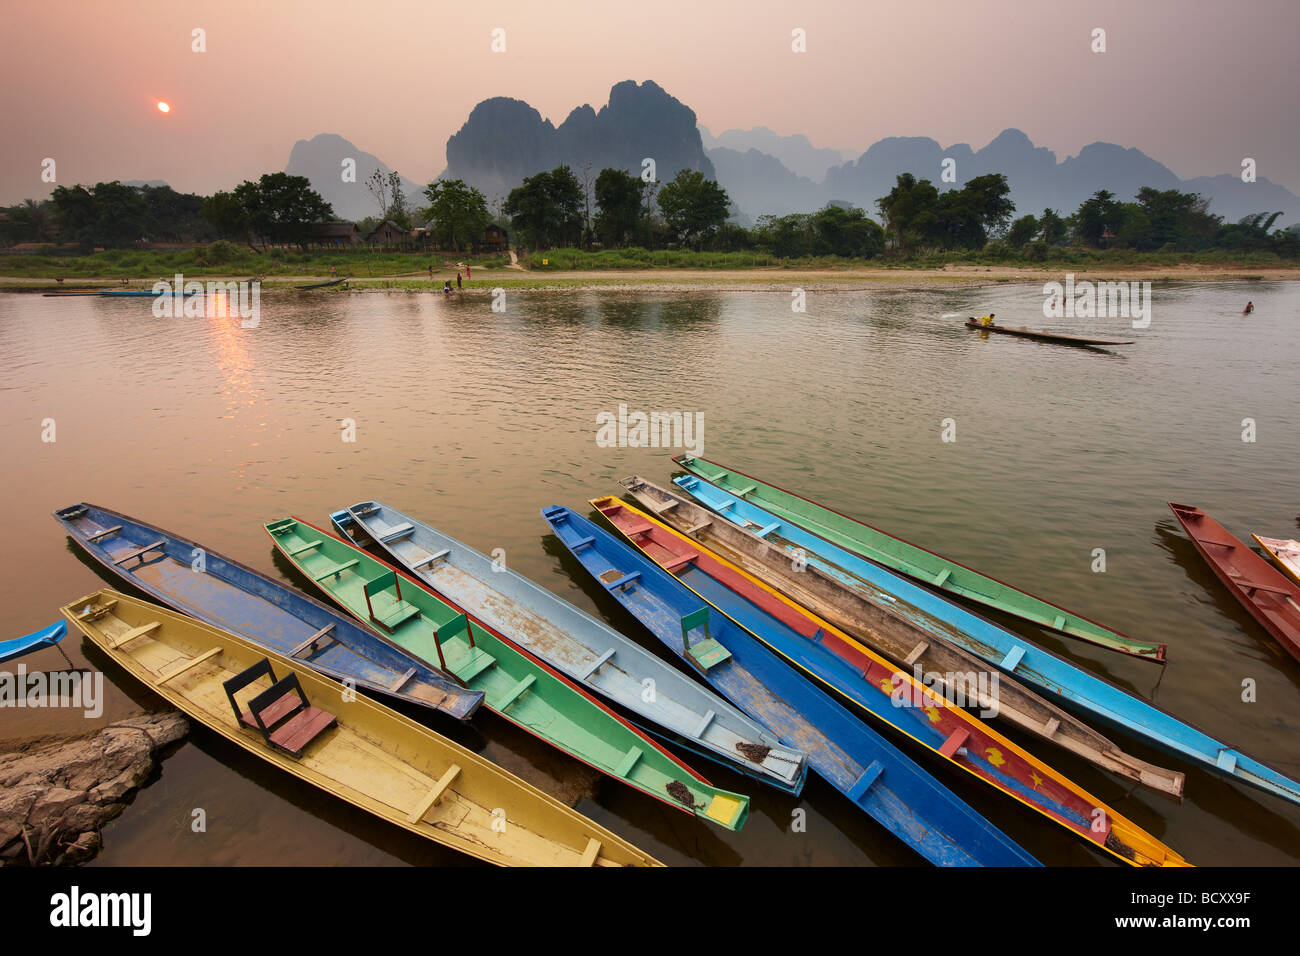 boats on the Nam Song River at Vang Vieng, Laos - Stock Image